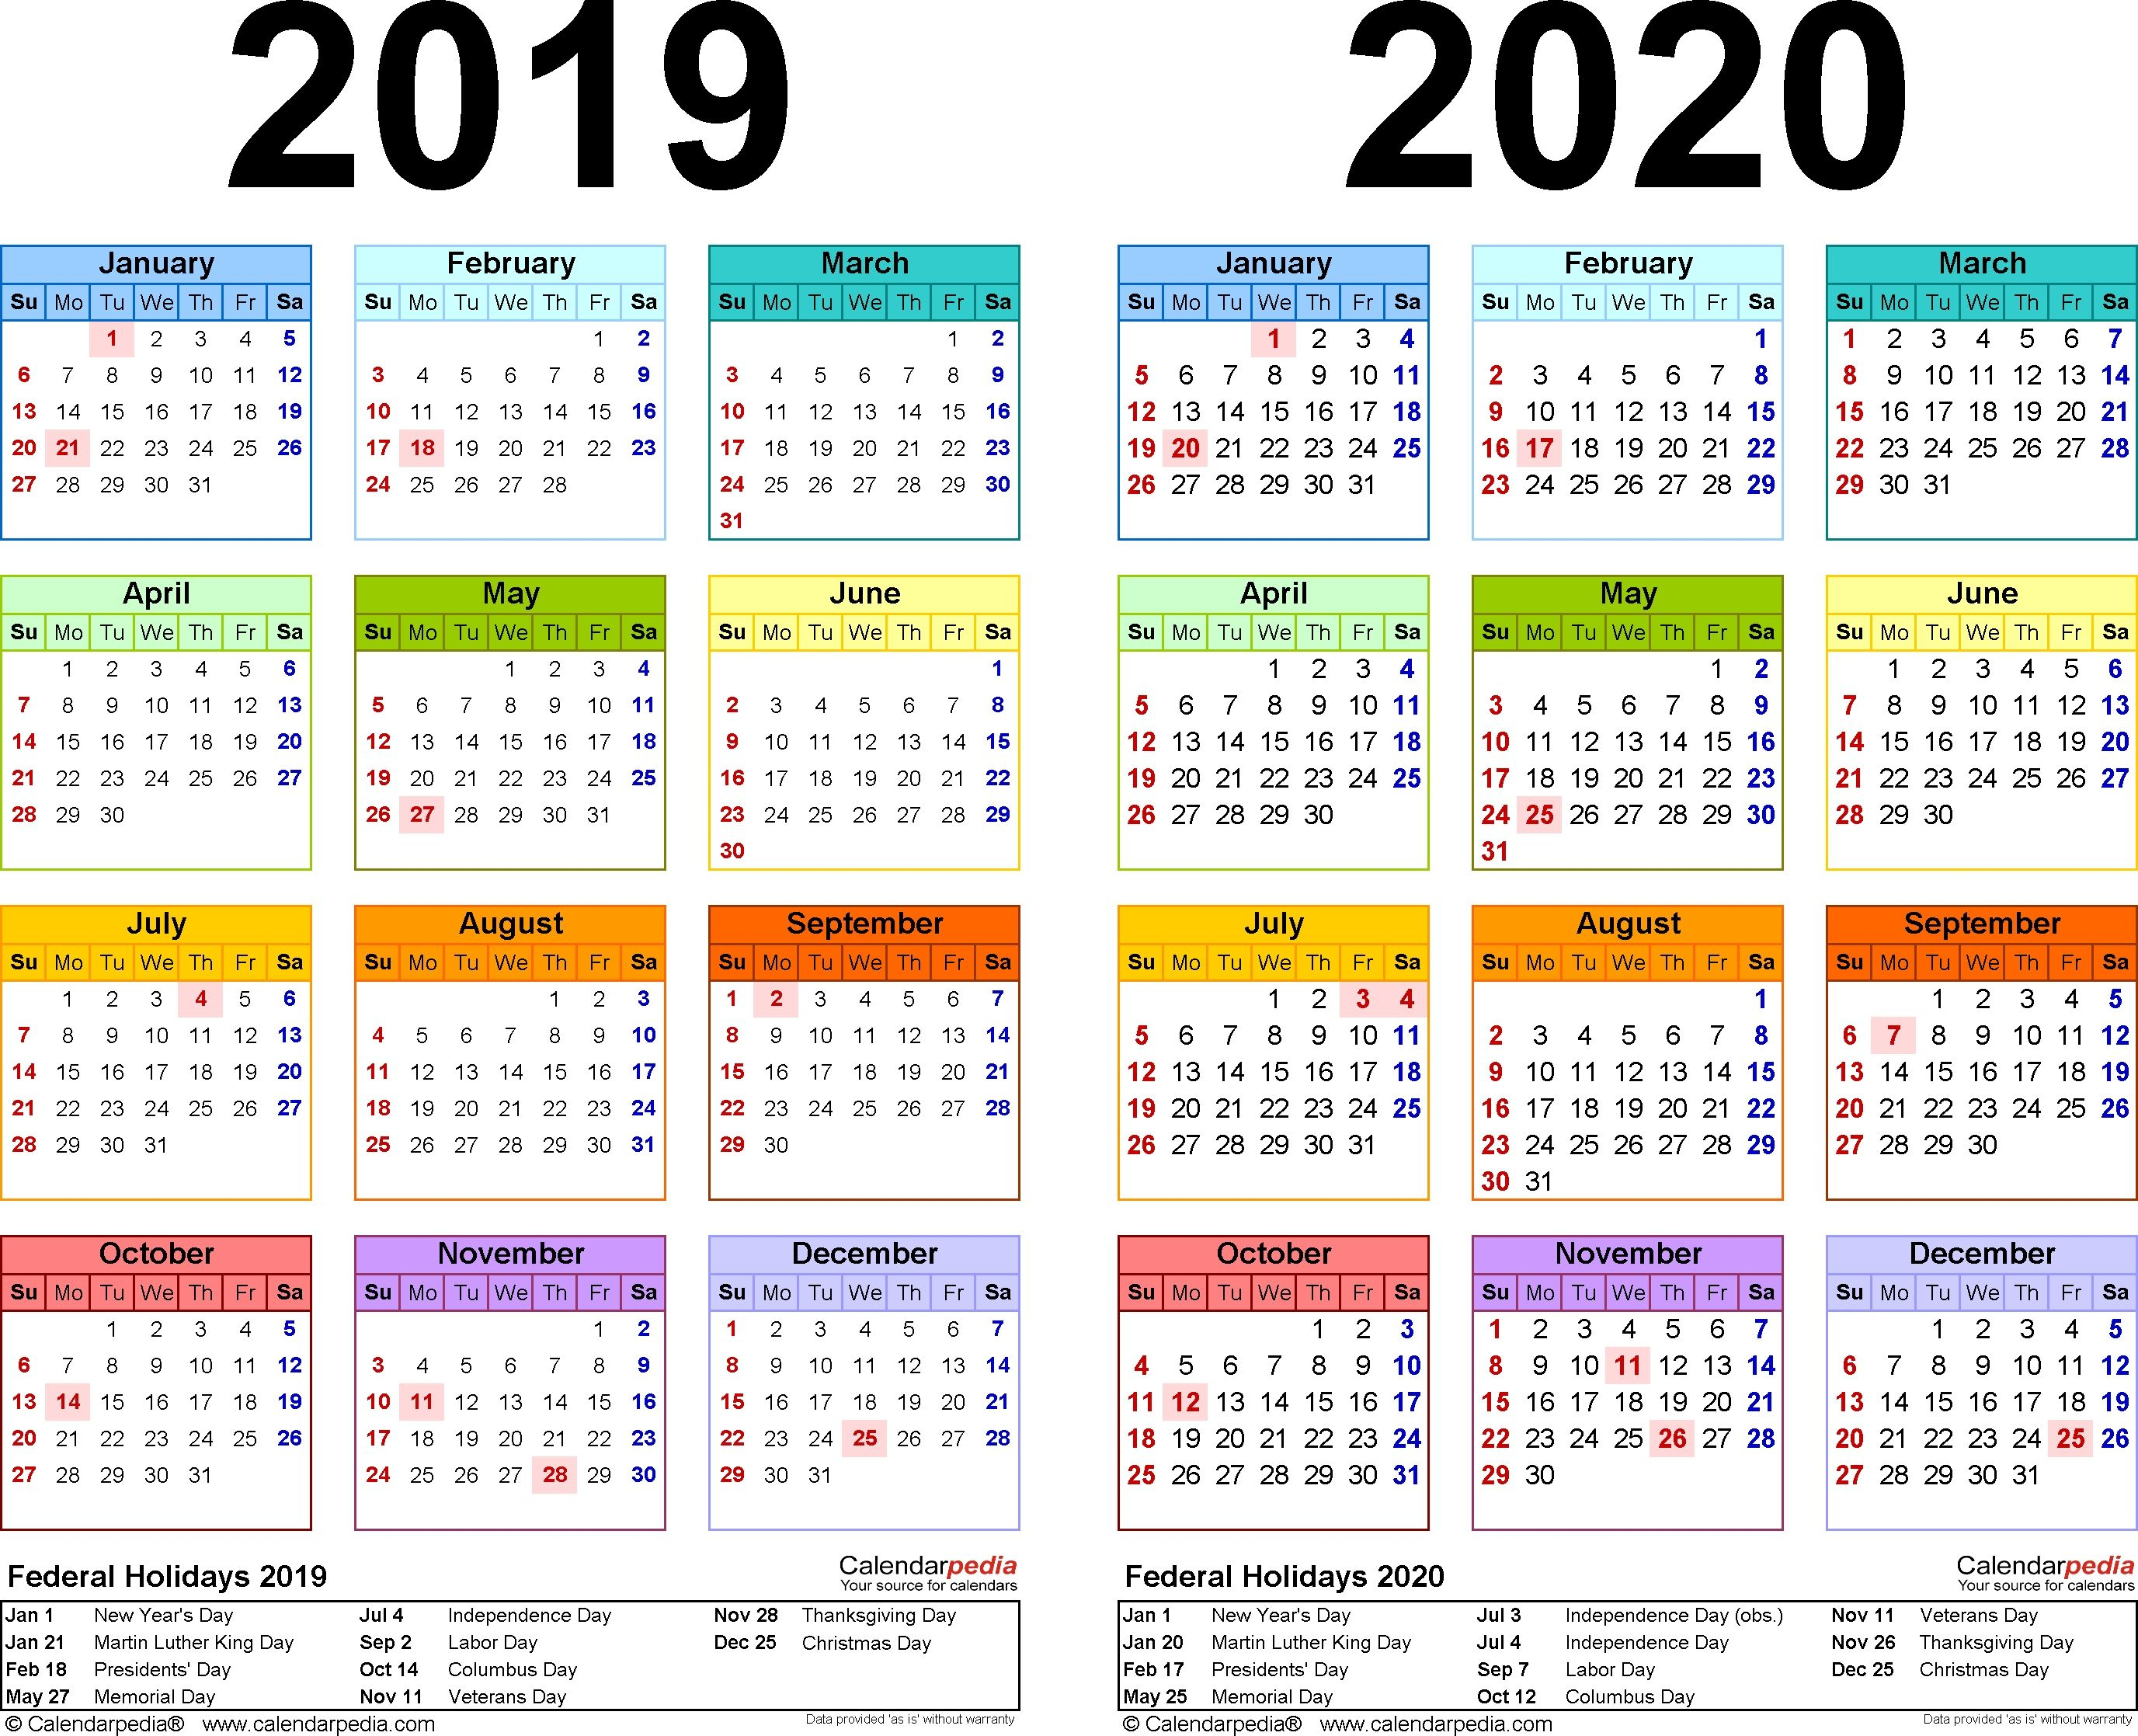 2020 2020 School Calendar Template - Wpa.wpart.co regarding Free Printable 2020-2020 Fiscal Year Calendar October-September